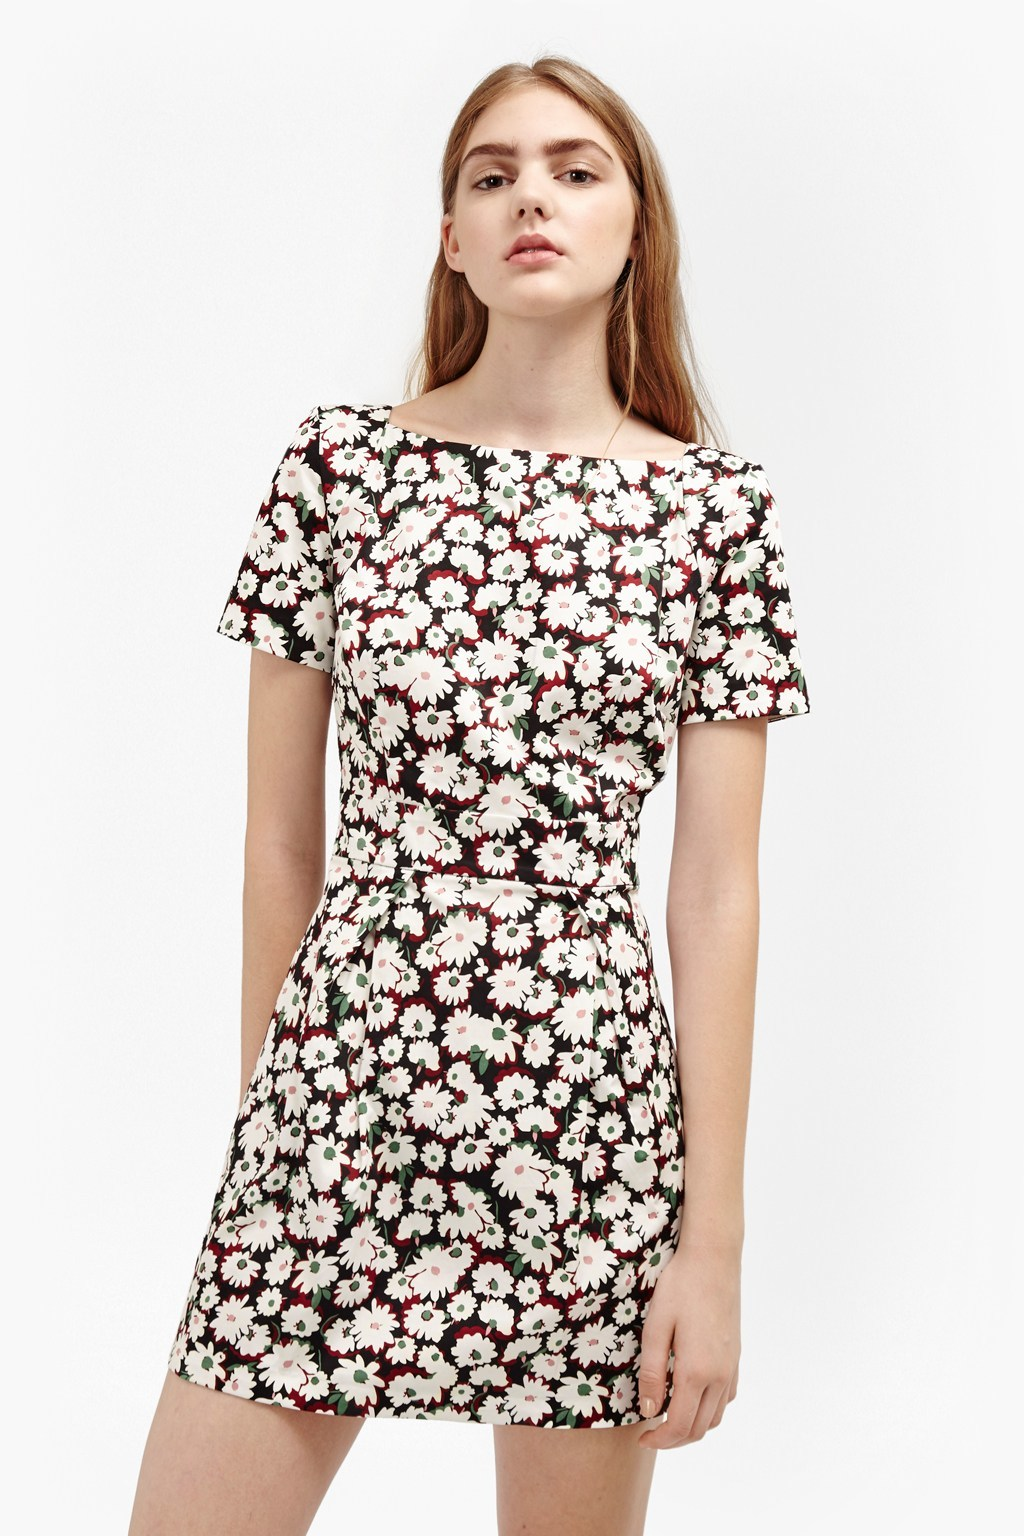 Bloomsbury Daisy Cotton Dress Brule Multi - style: shift; length: mini; neckline: round neck; secondary colour: ivory/cream; predominant colour: black; occasions: casual; fit: body skimming; fibres: cotton - 100%; sleeve length: short sleeve; sleeve style: standard; texture group: cotton feel fabrics; pattern type: fabric; pattern: patterned/print; multicoloured: multicoloured; season: a/w 2016; wardrobe: highlight